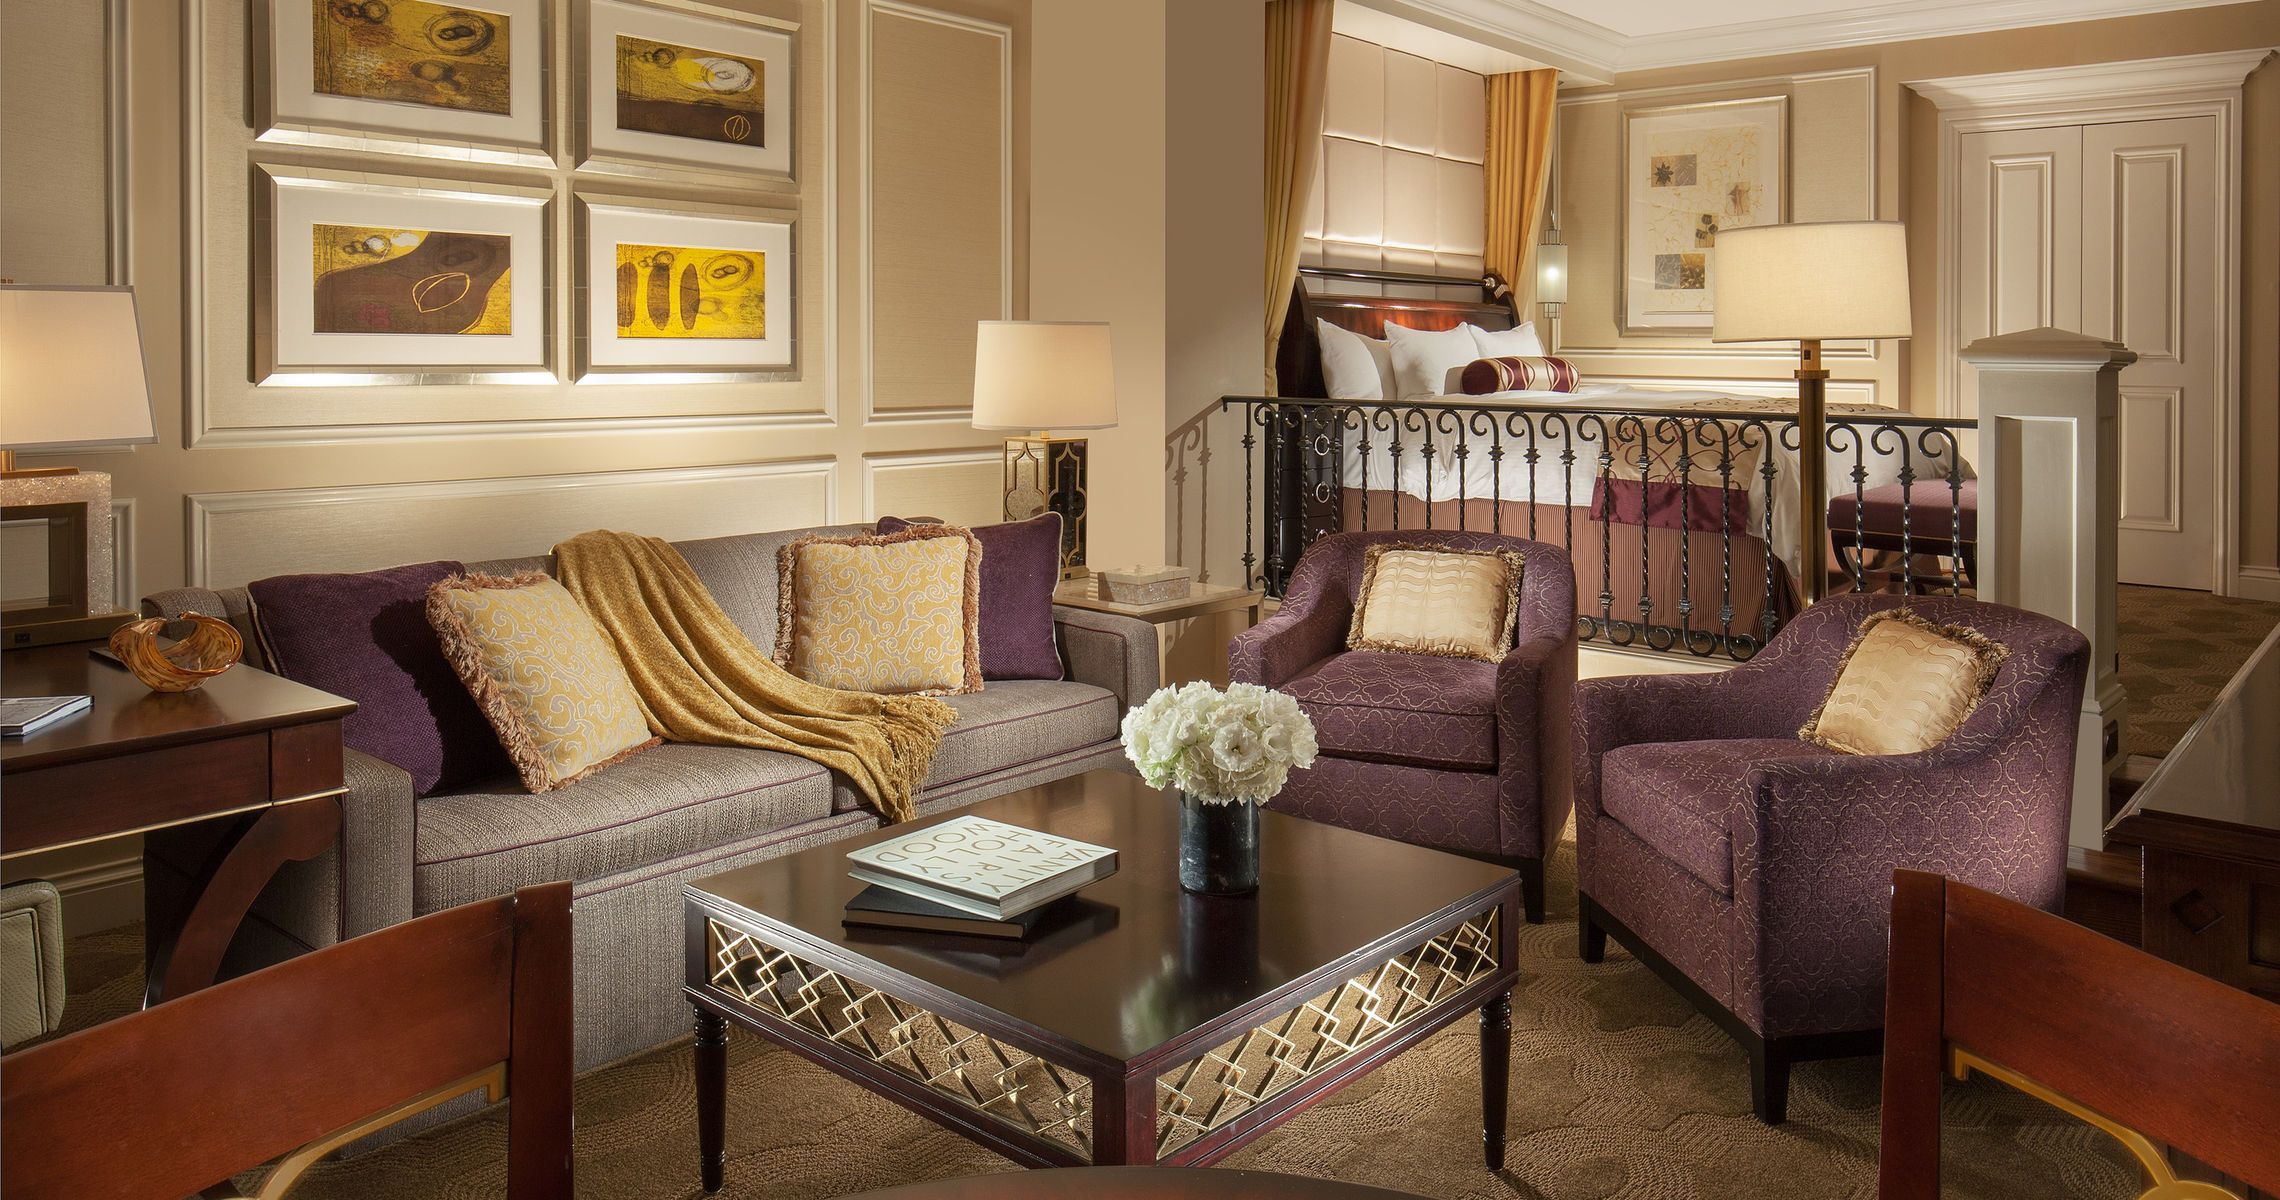 Sunken Living Rooms Make Luxury Suites Feel More Like An Apartment Than A Hotel Room Venetian Las Vegas Lasvegasholiday